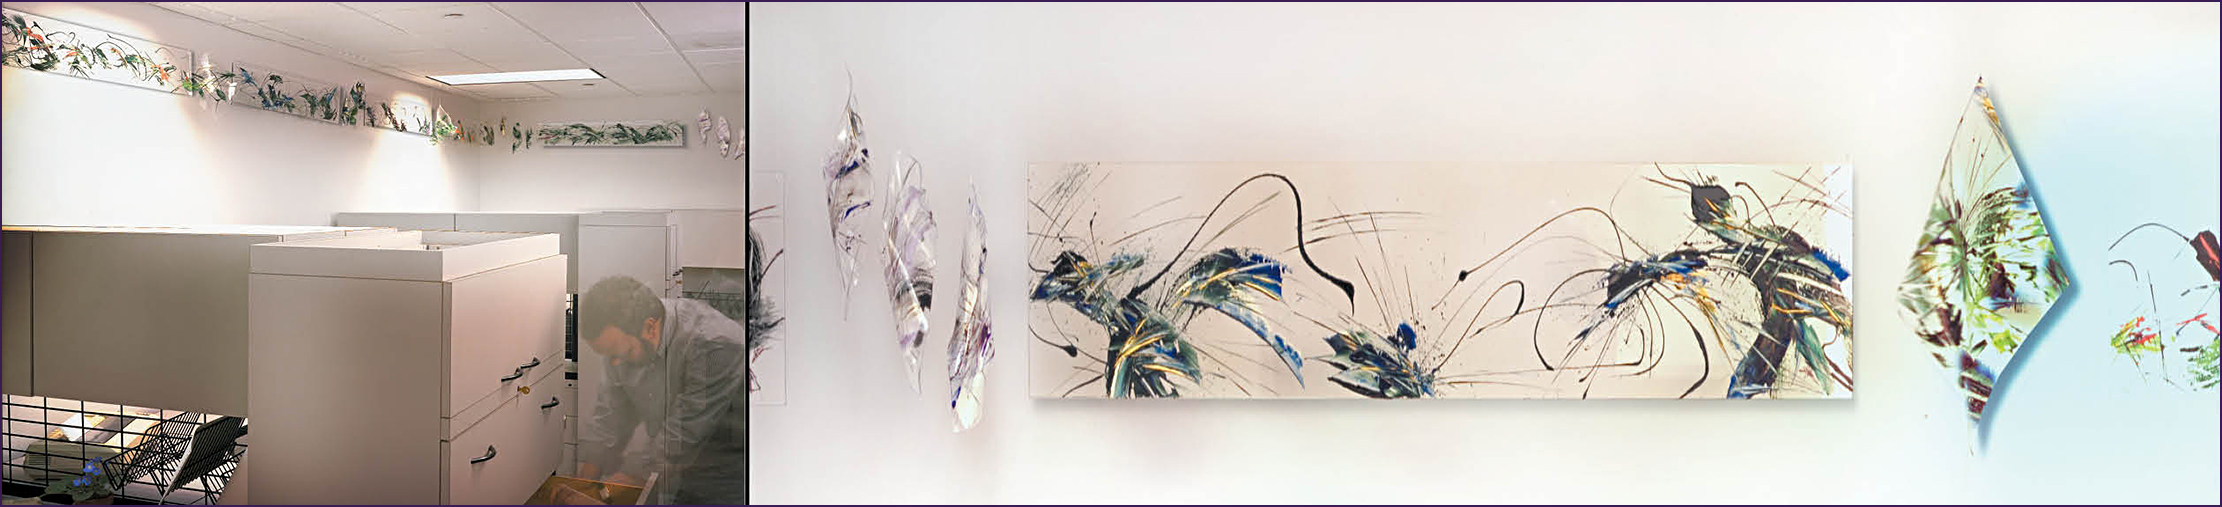 Amy Thornton Art Plexiglas Paintings Sculptural Plexiglas paintings